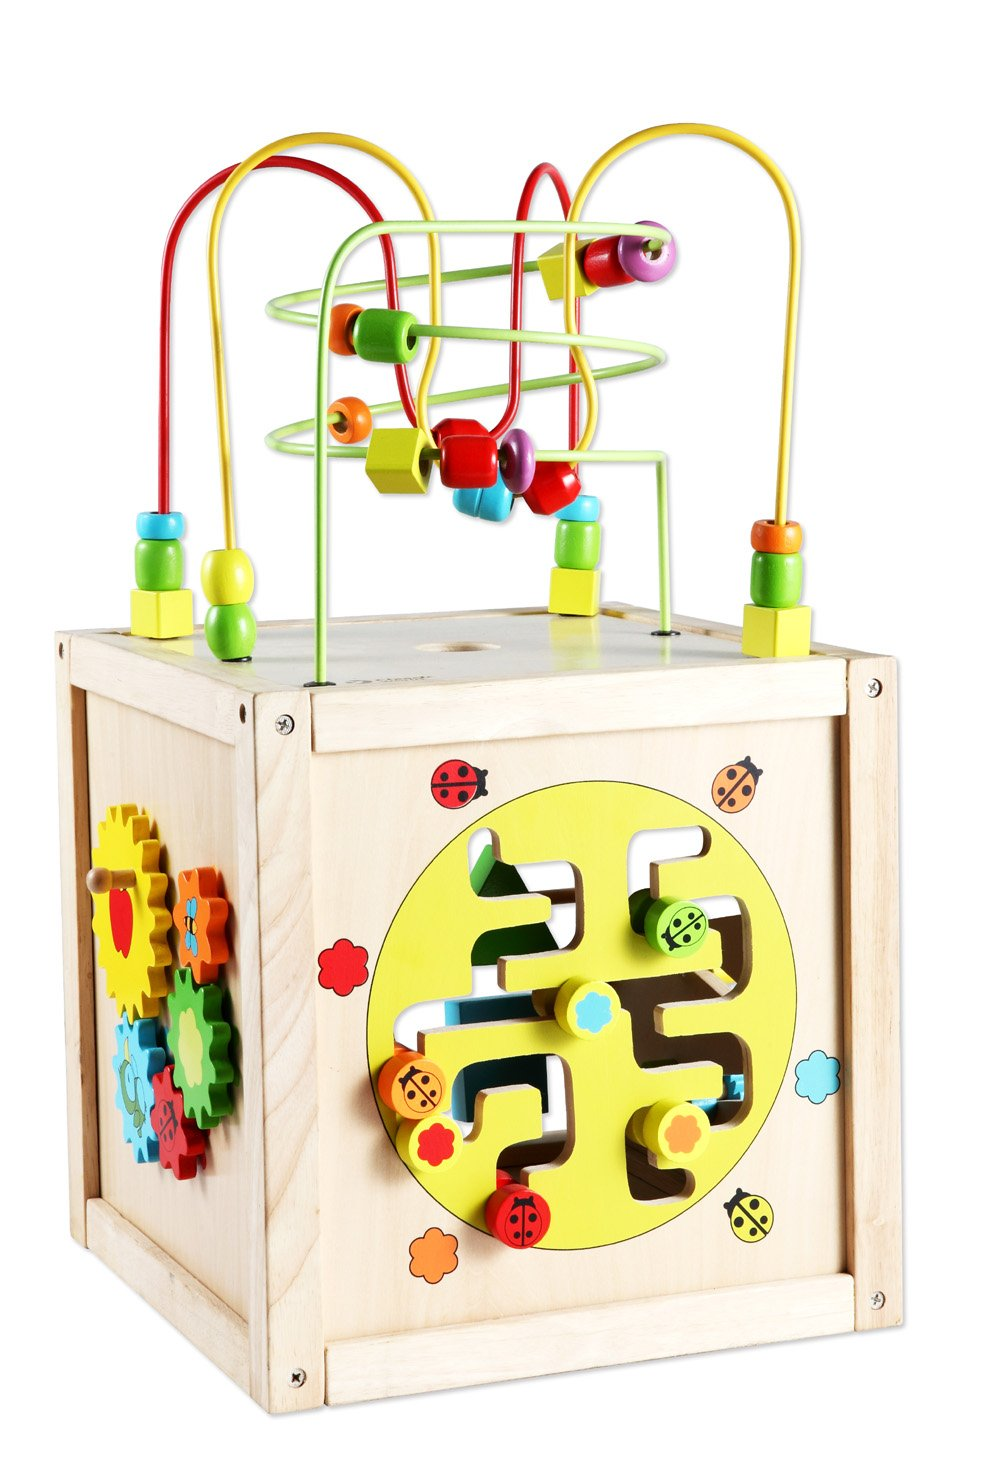 B00DPTRCK4 Classic World Toys Multi-Activity Cube with Wheels 71qiClbrjXL